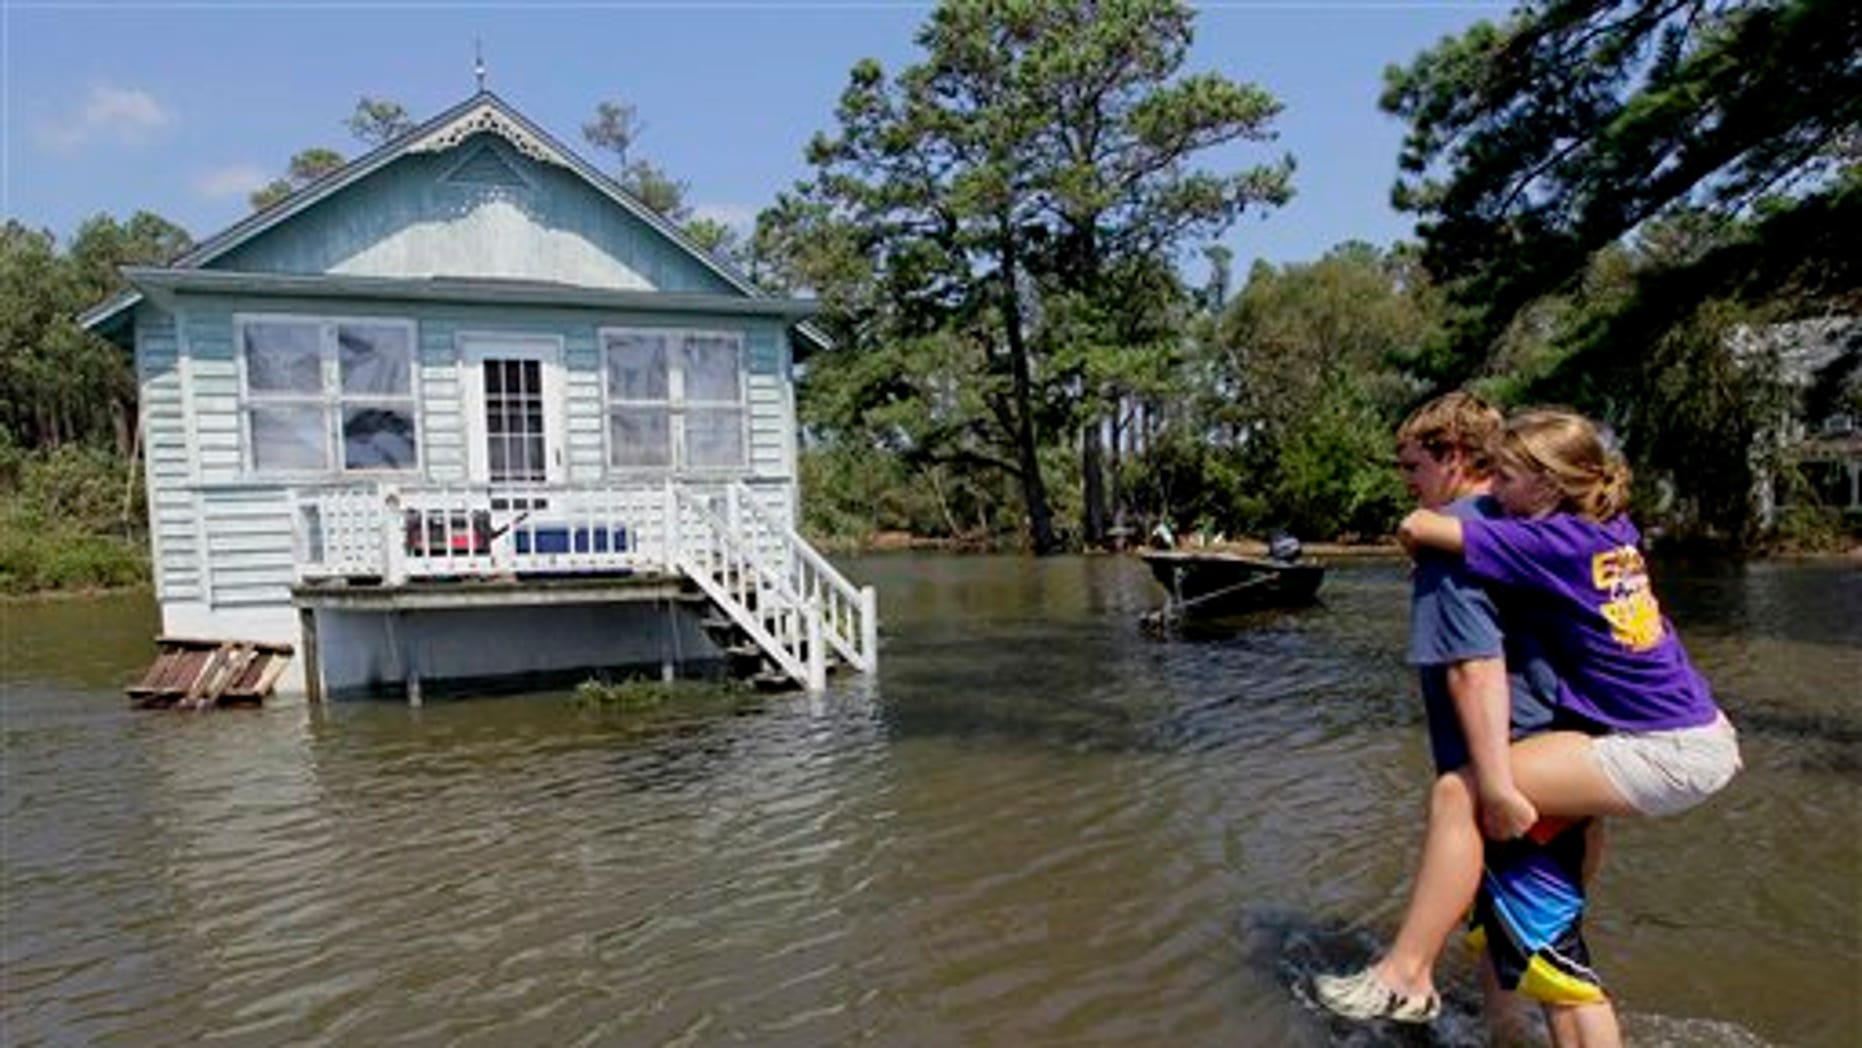 Aug. 28: Residents of Stumpy Point, N.C. make their way into their flooded home following the effects of Hurricane Irene.  Flood waters rose all across New Jersey on Sunday, closing roads from side streets to major highways as Hurricane Irene weakened and moved on, leaving 600,000 homes and businesses without power.